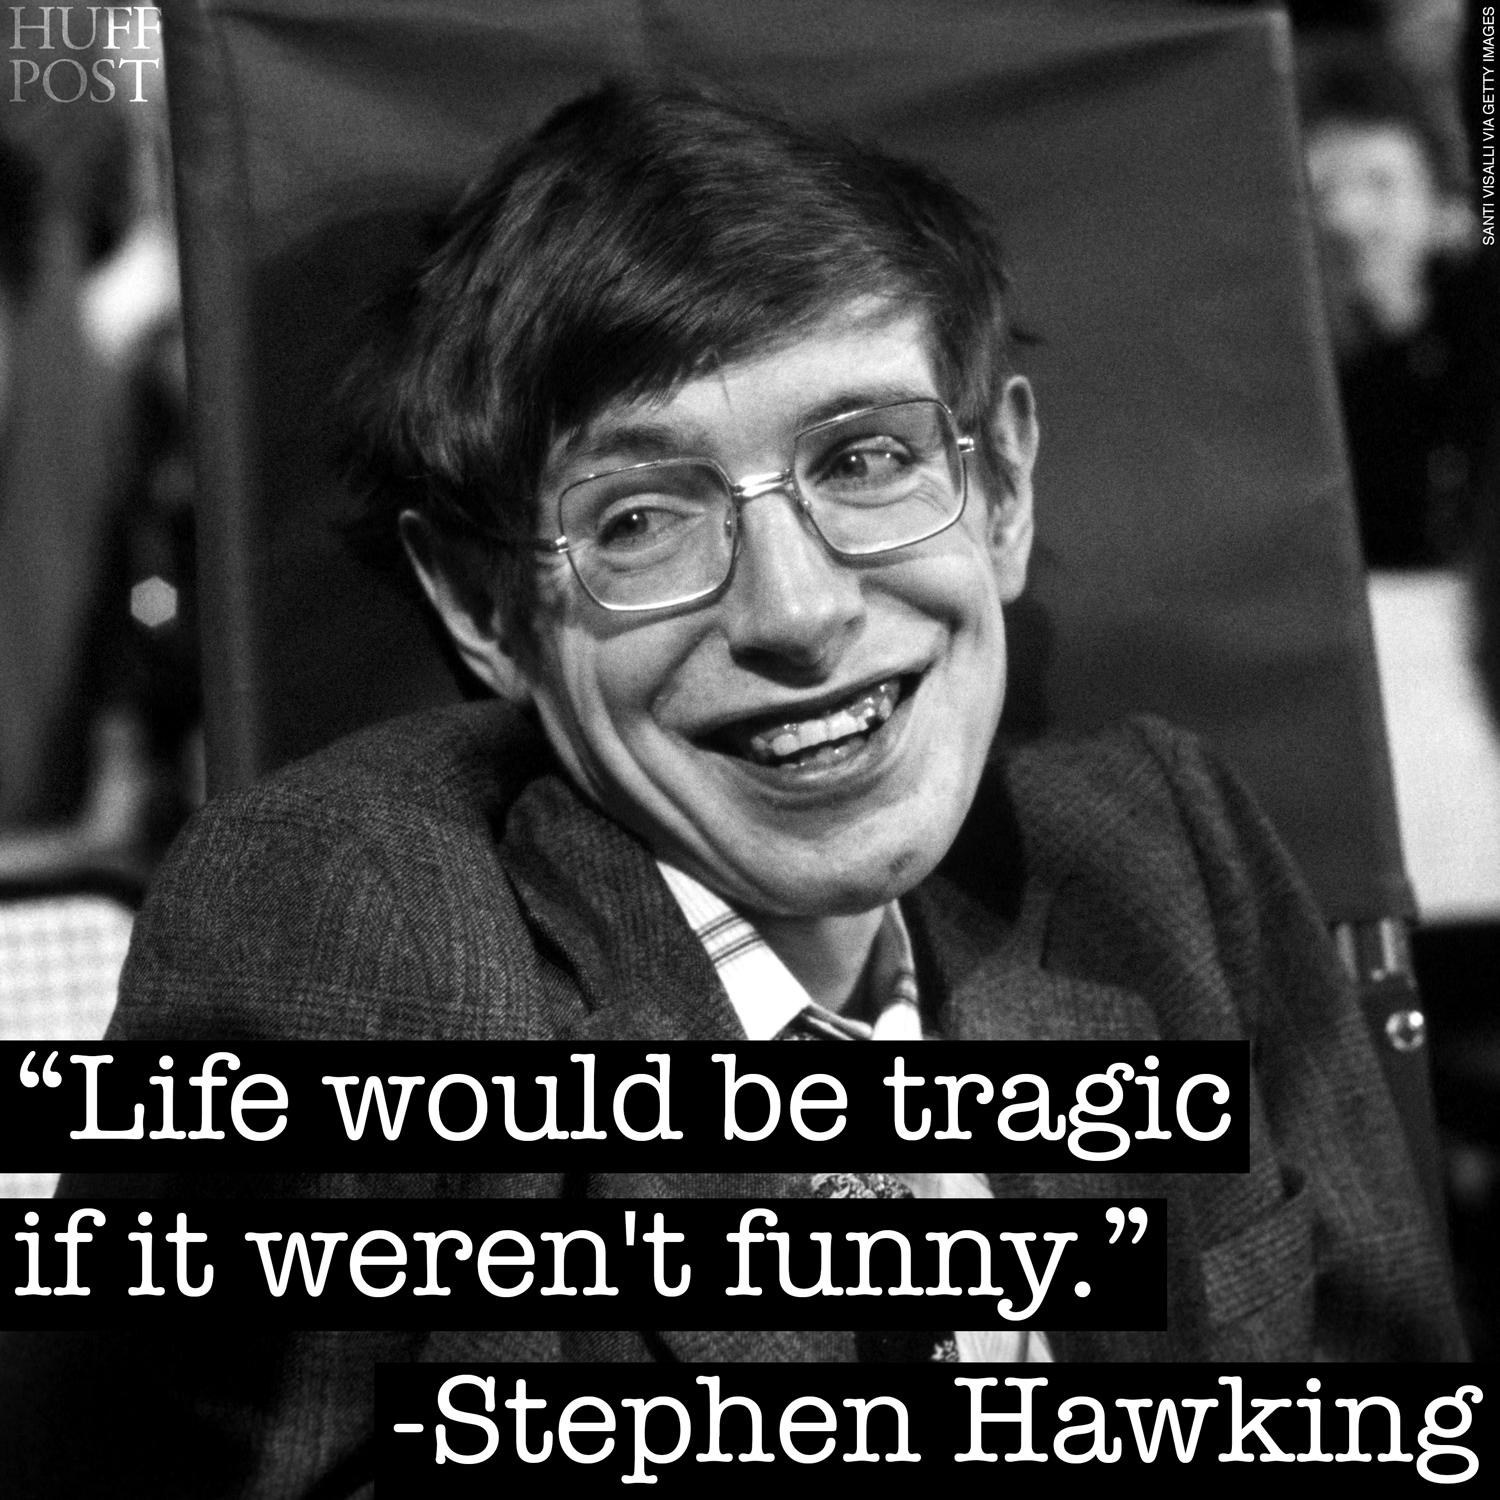 huffington post on happy birthday stephen hawking huffington post on happy birthday stephen hawking t co zgd97ag2lg t co 6qmcikgdgr